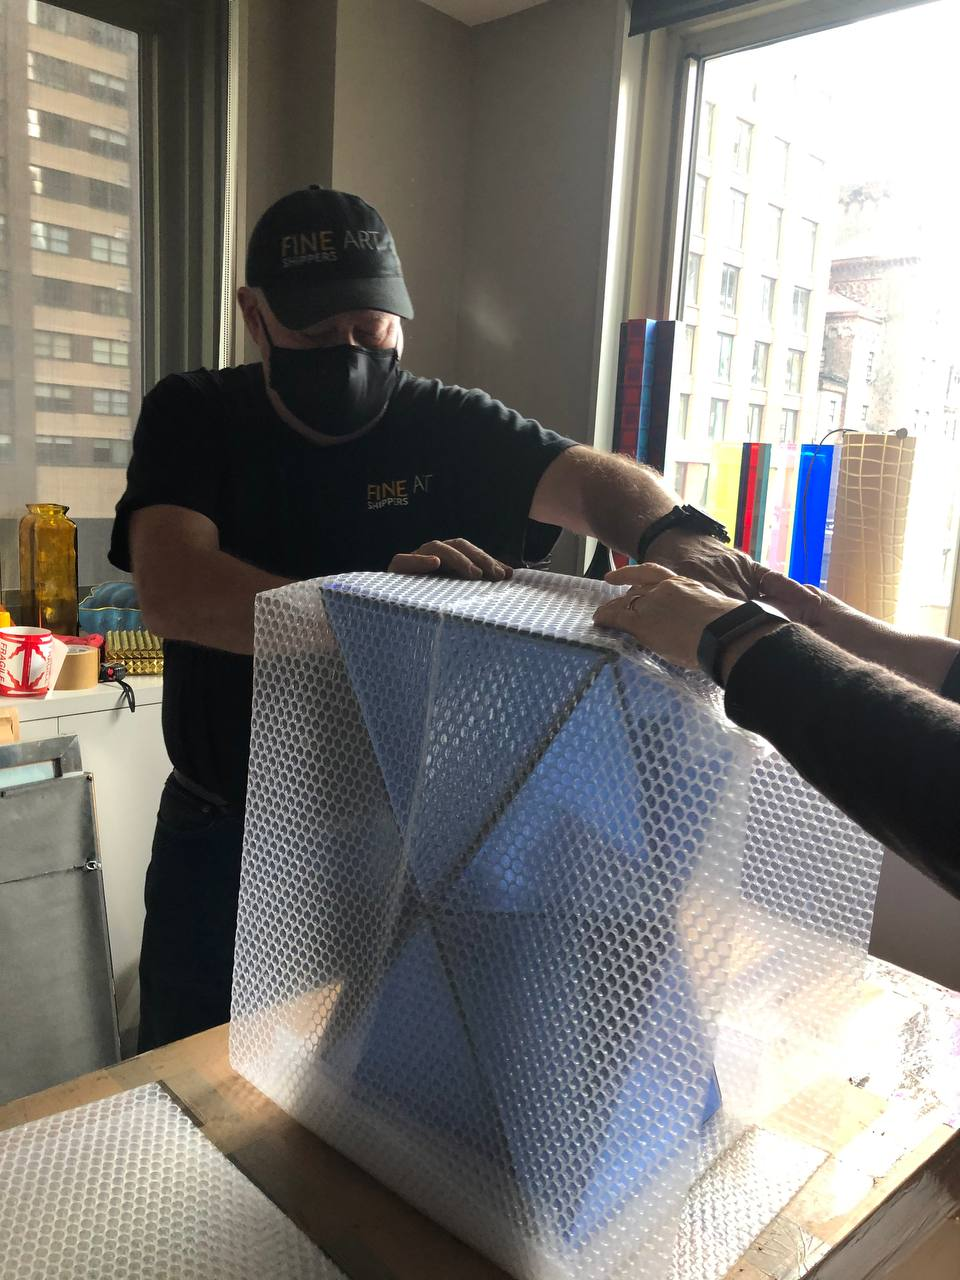 Packing and shipping glass art